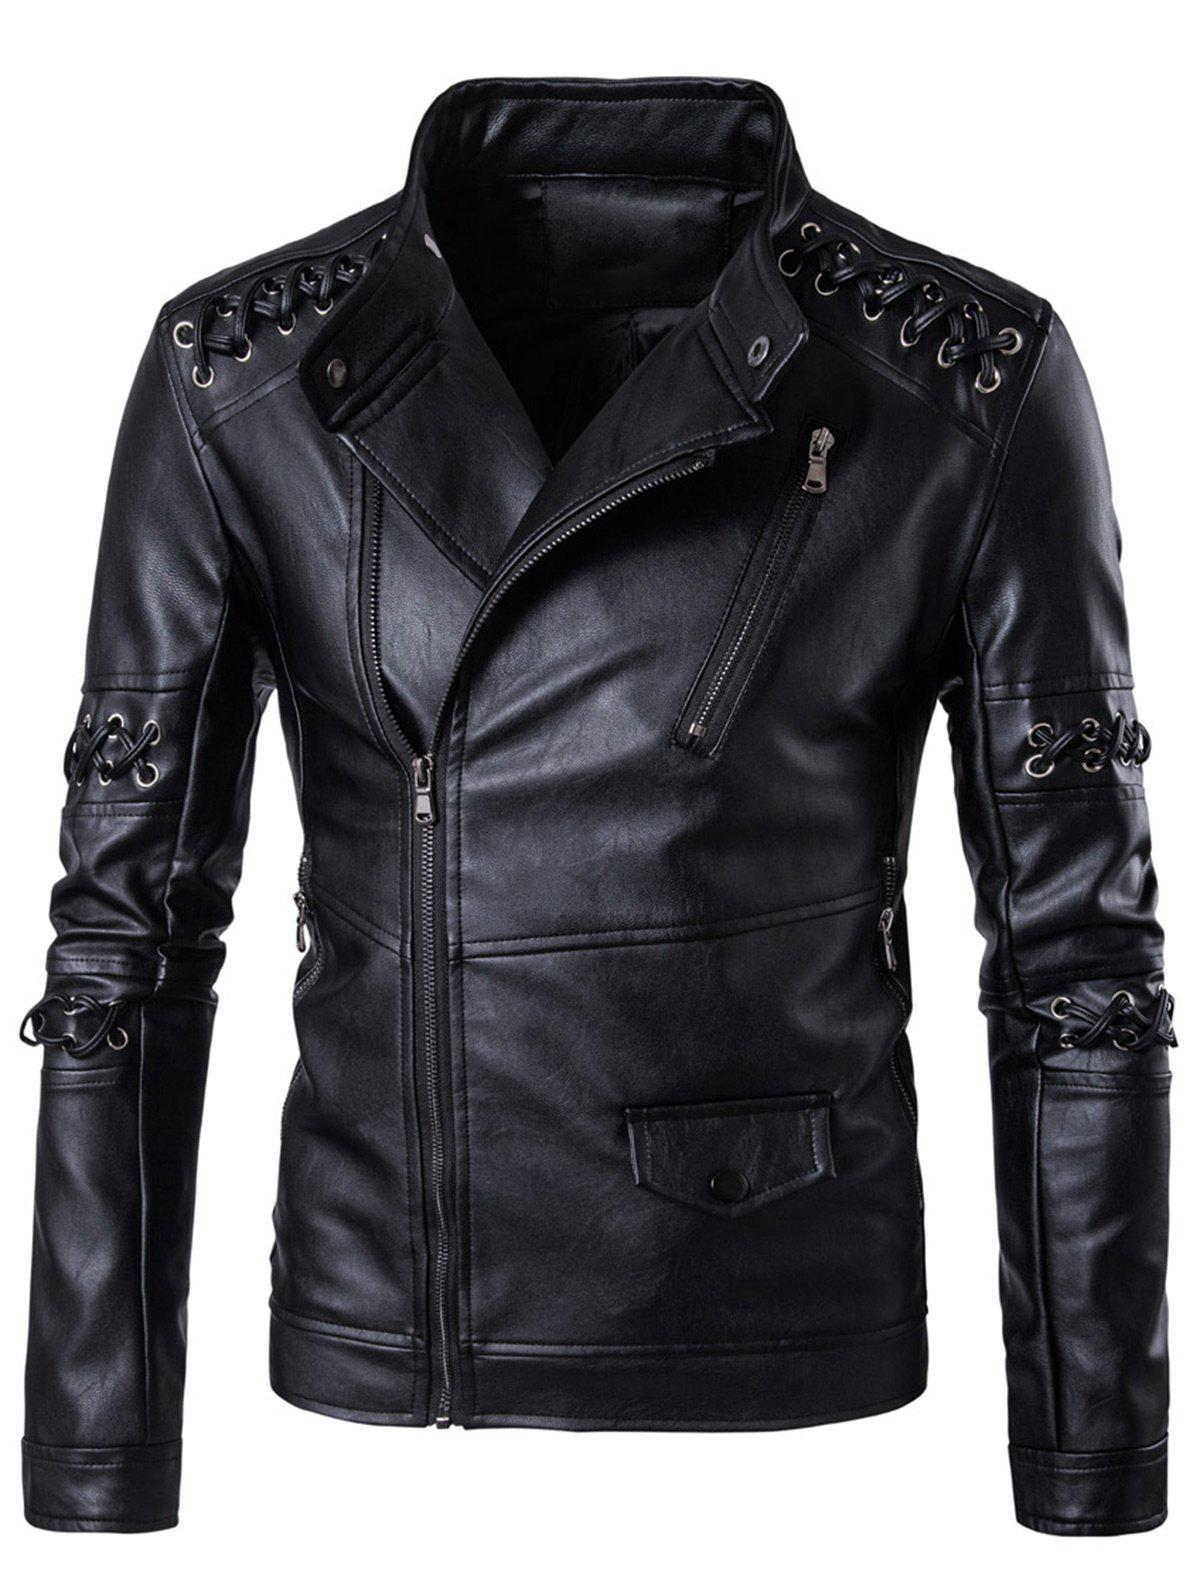 Asymétrique Zip Up Sennit Design Biker Jacket - Noir XL